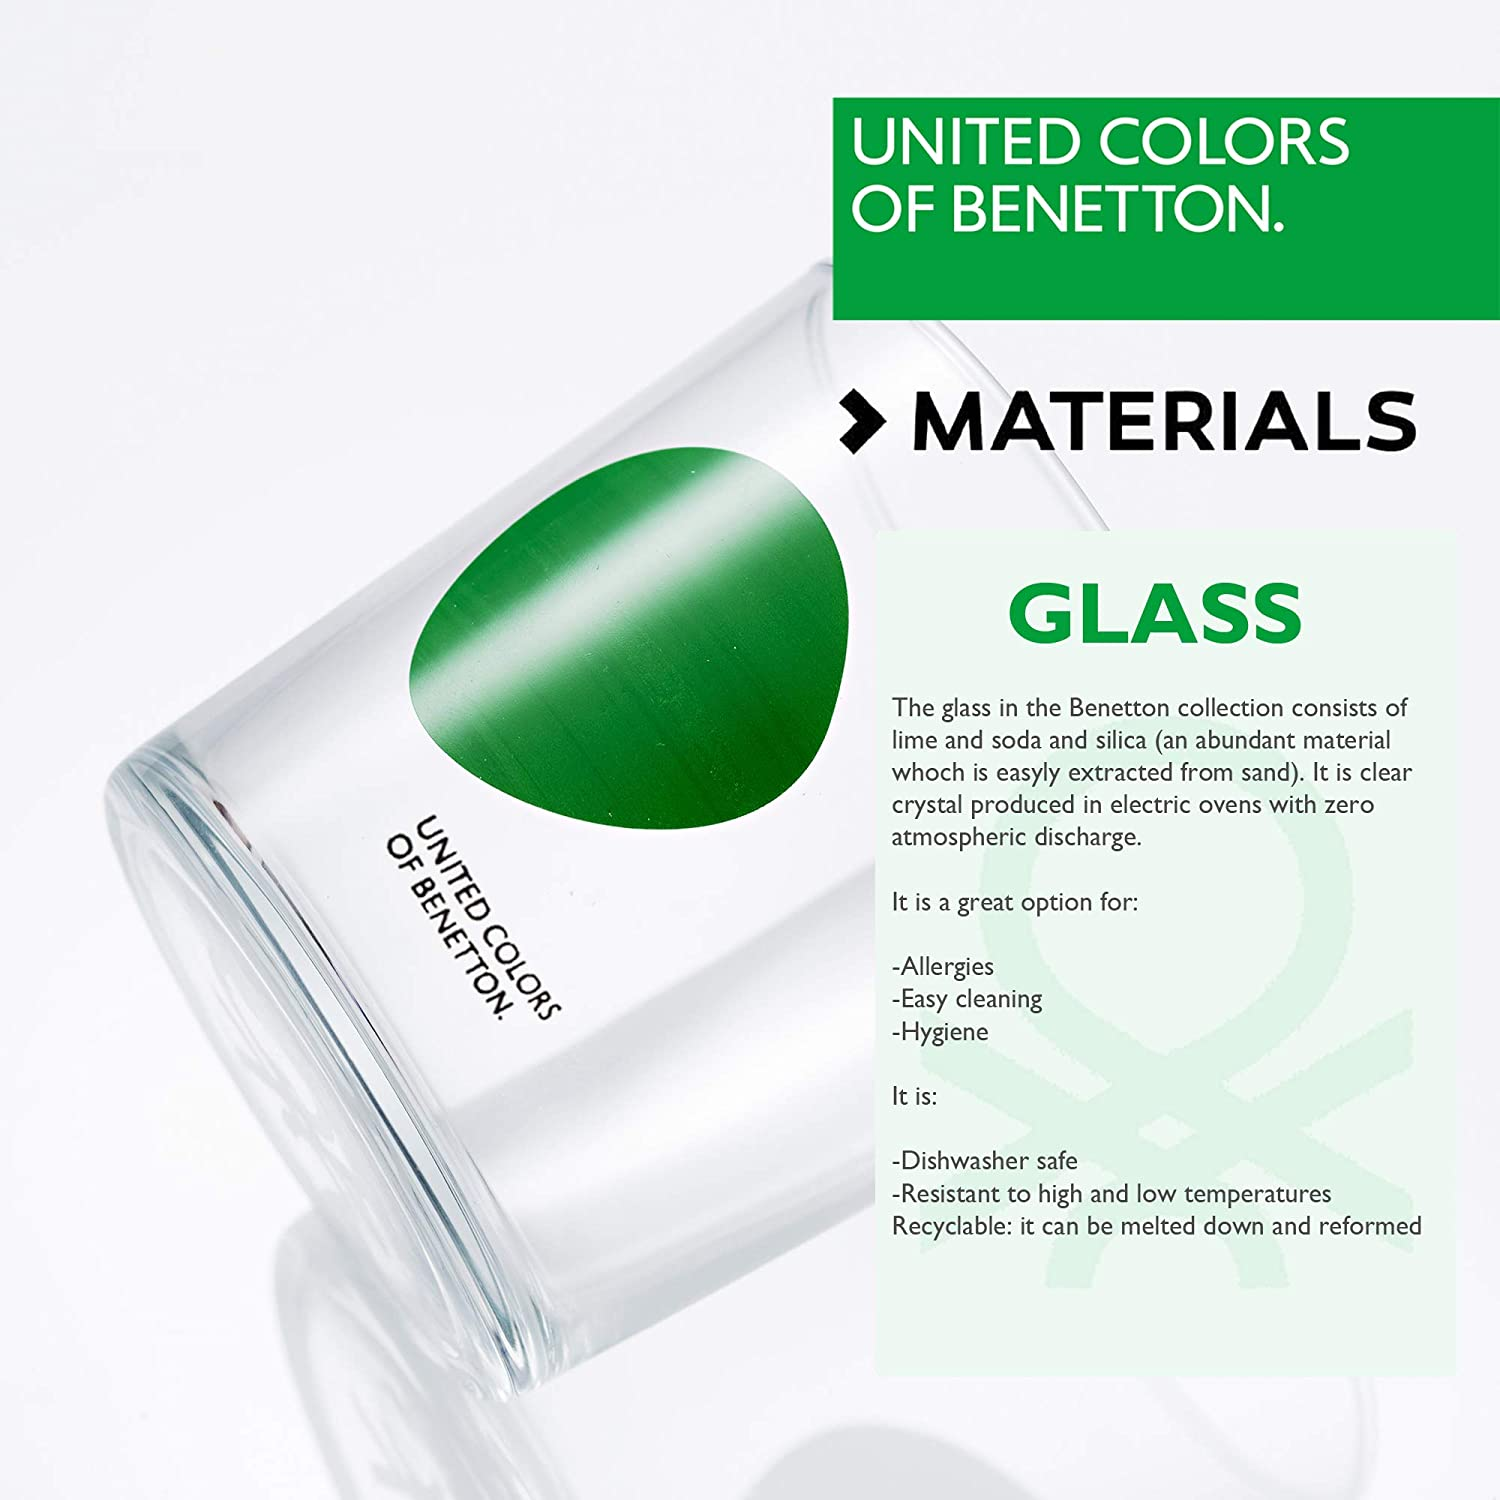 sueño divorcio granizo  UNITED COLORS OF BENETTON. BE066 Set 4pcs vasos de agua 0,345l cristal  decorado bicolor Casa Benetton: Amazon.es: Hogar